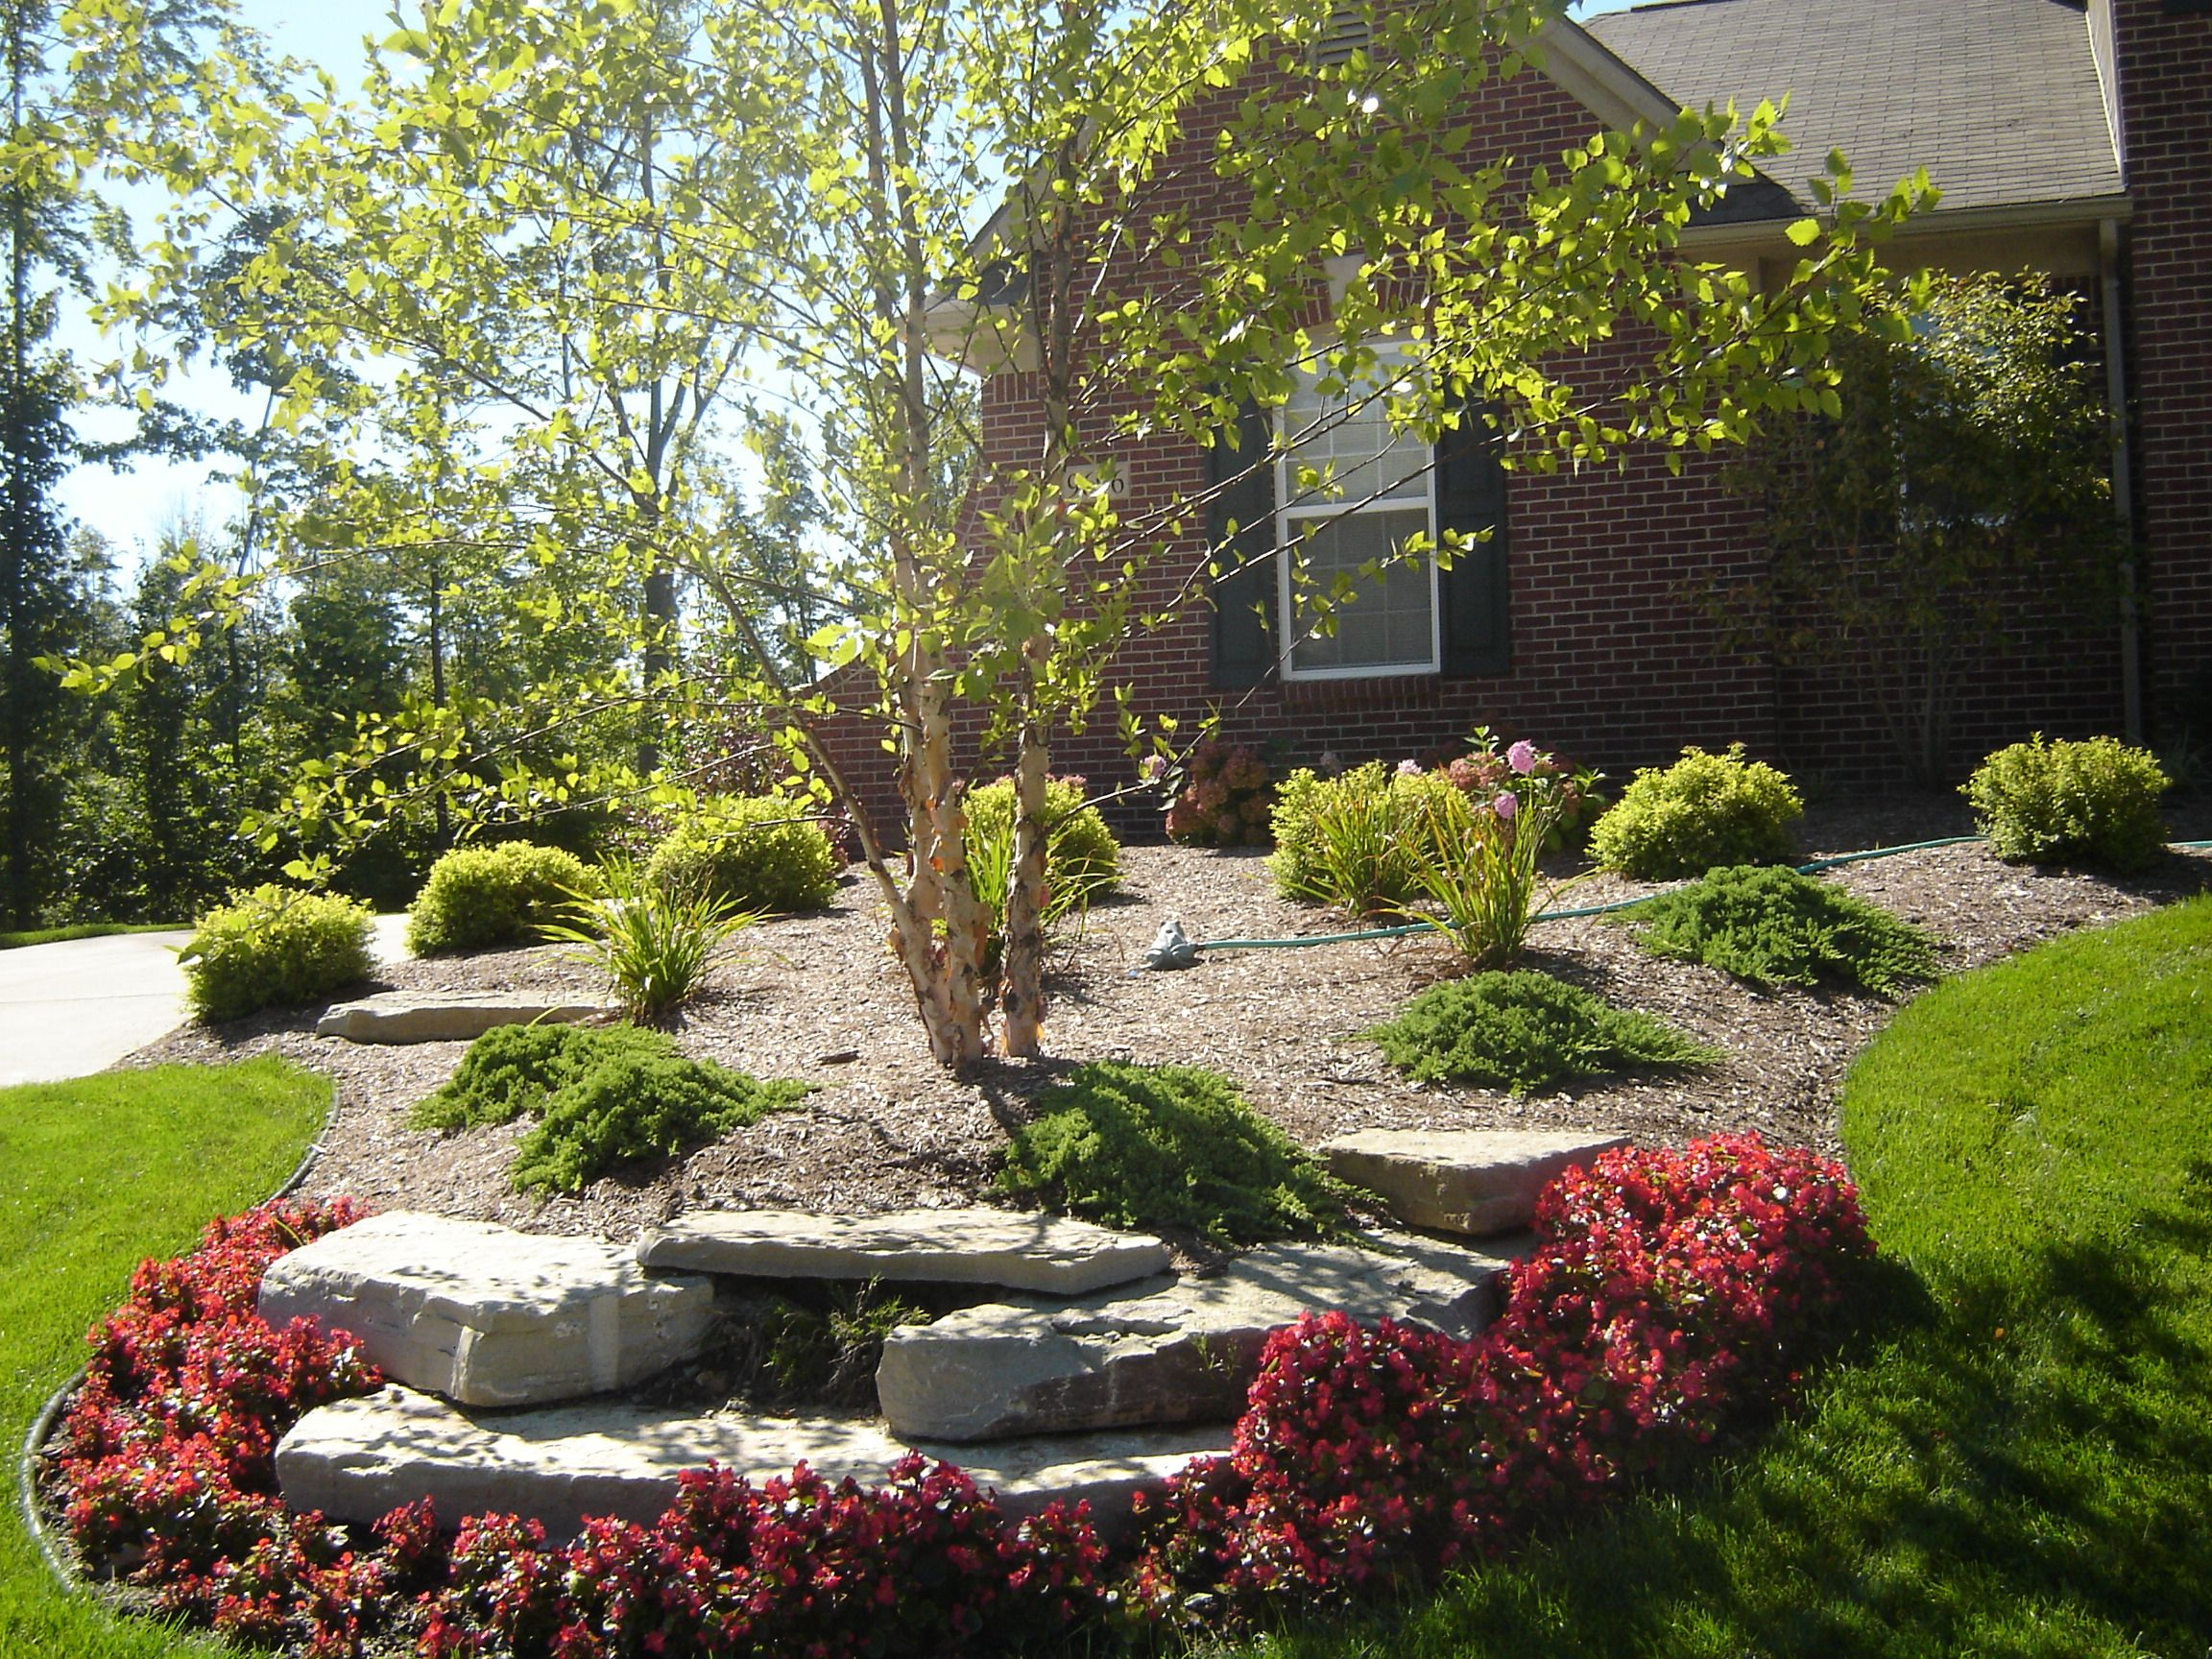 87 best images about Landscaping on Pinterest